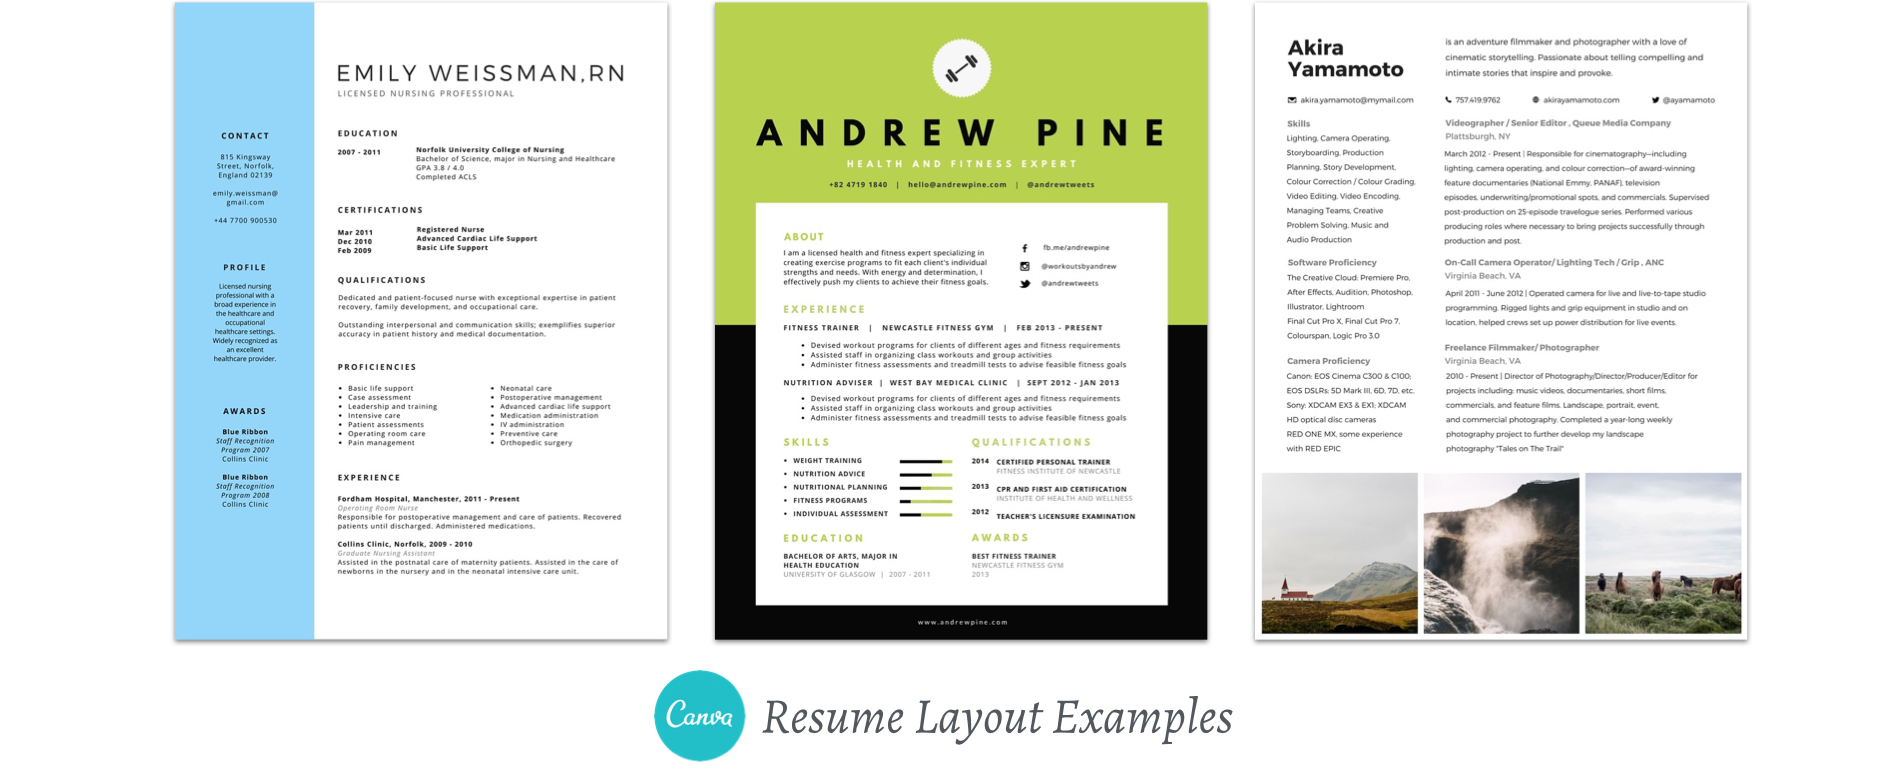 Resumes and Other Ways to use Canva for your career | Greatest Story for Business